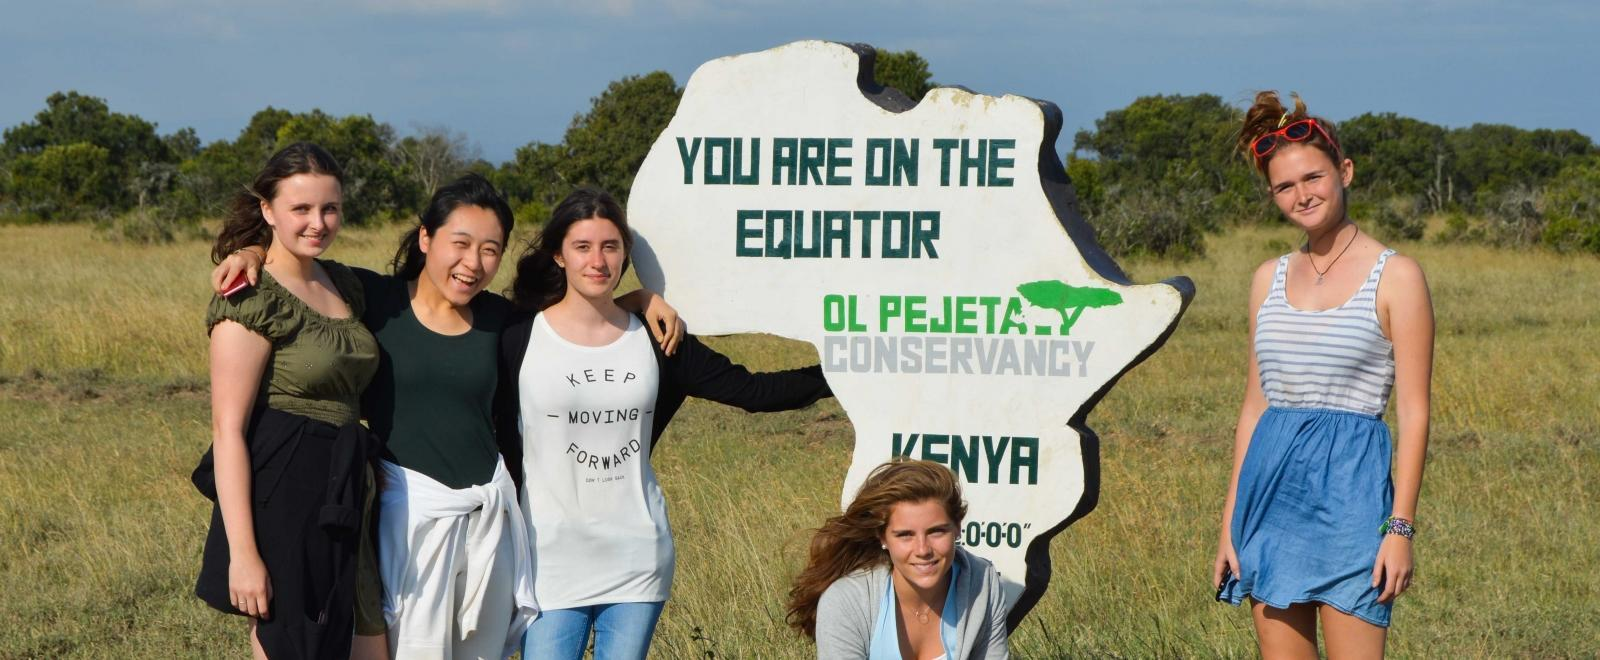 Projects Abroad staff take the volunteers on a tour of Kenya.